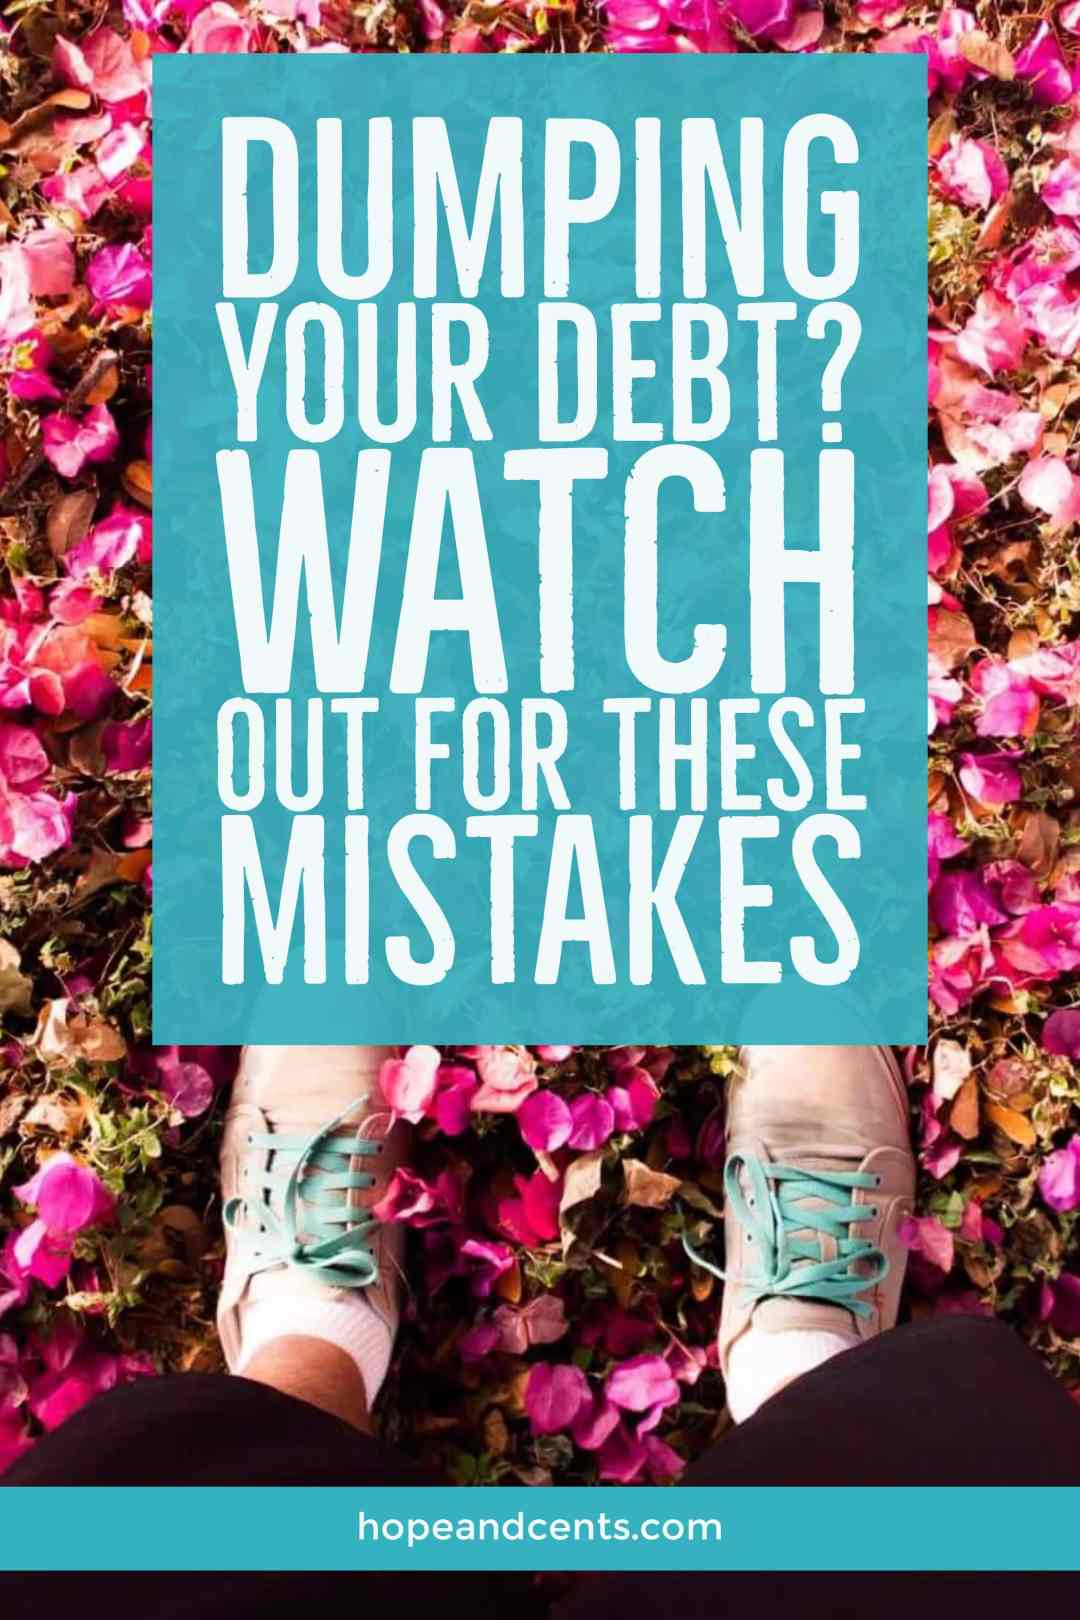 Are you dumping your debt? That's awesome! While there are multiple ways to pay off your debt, be sure you avoid these mistakes while on your debt-free journey.